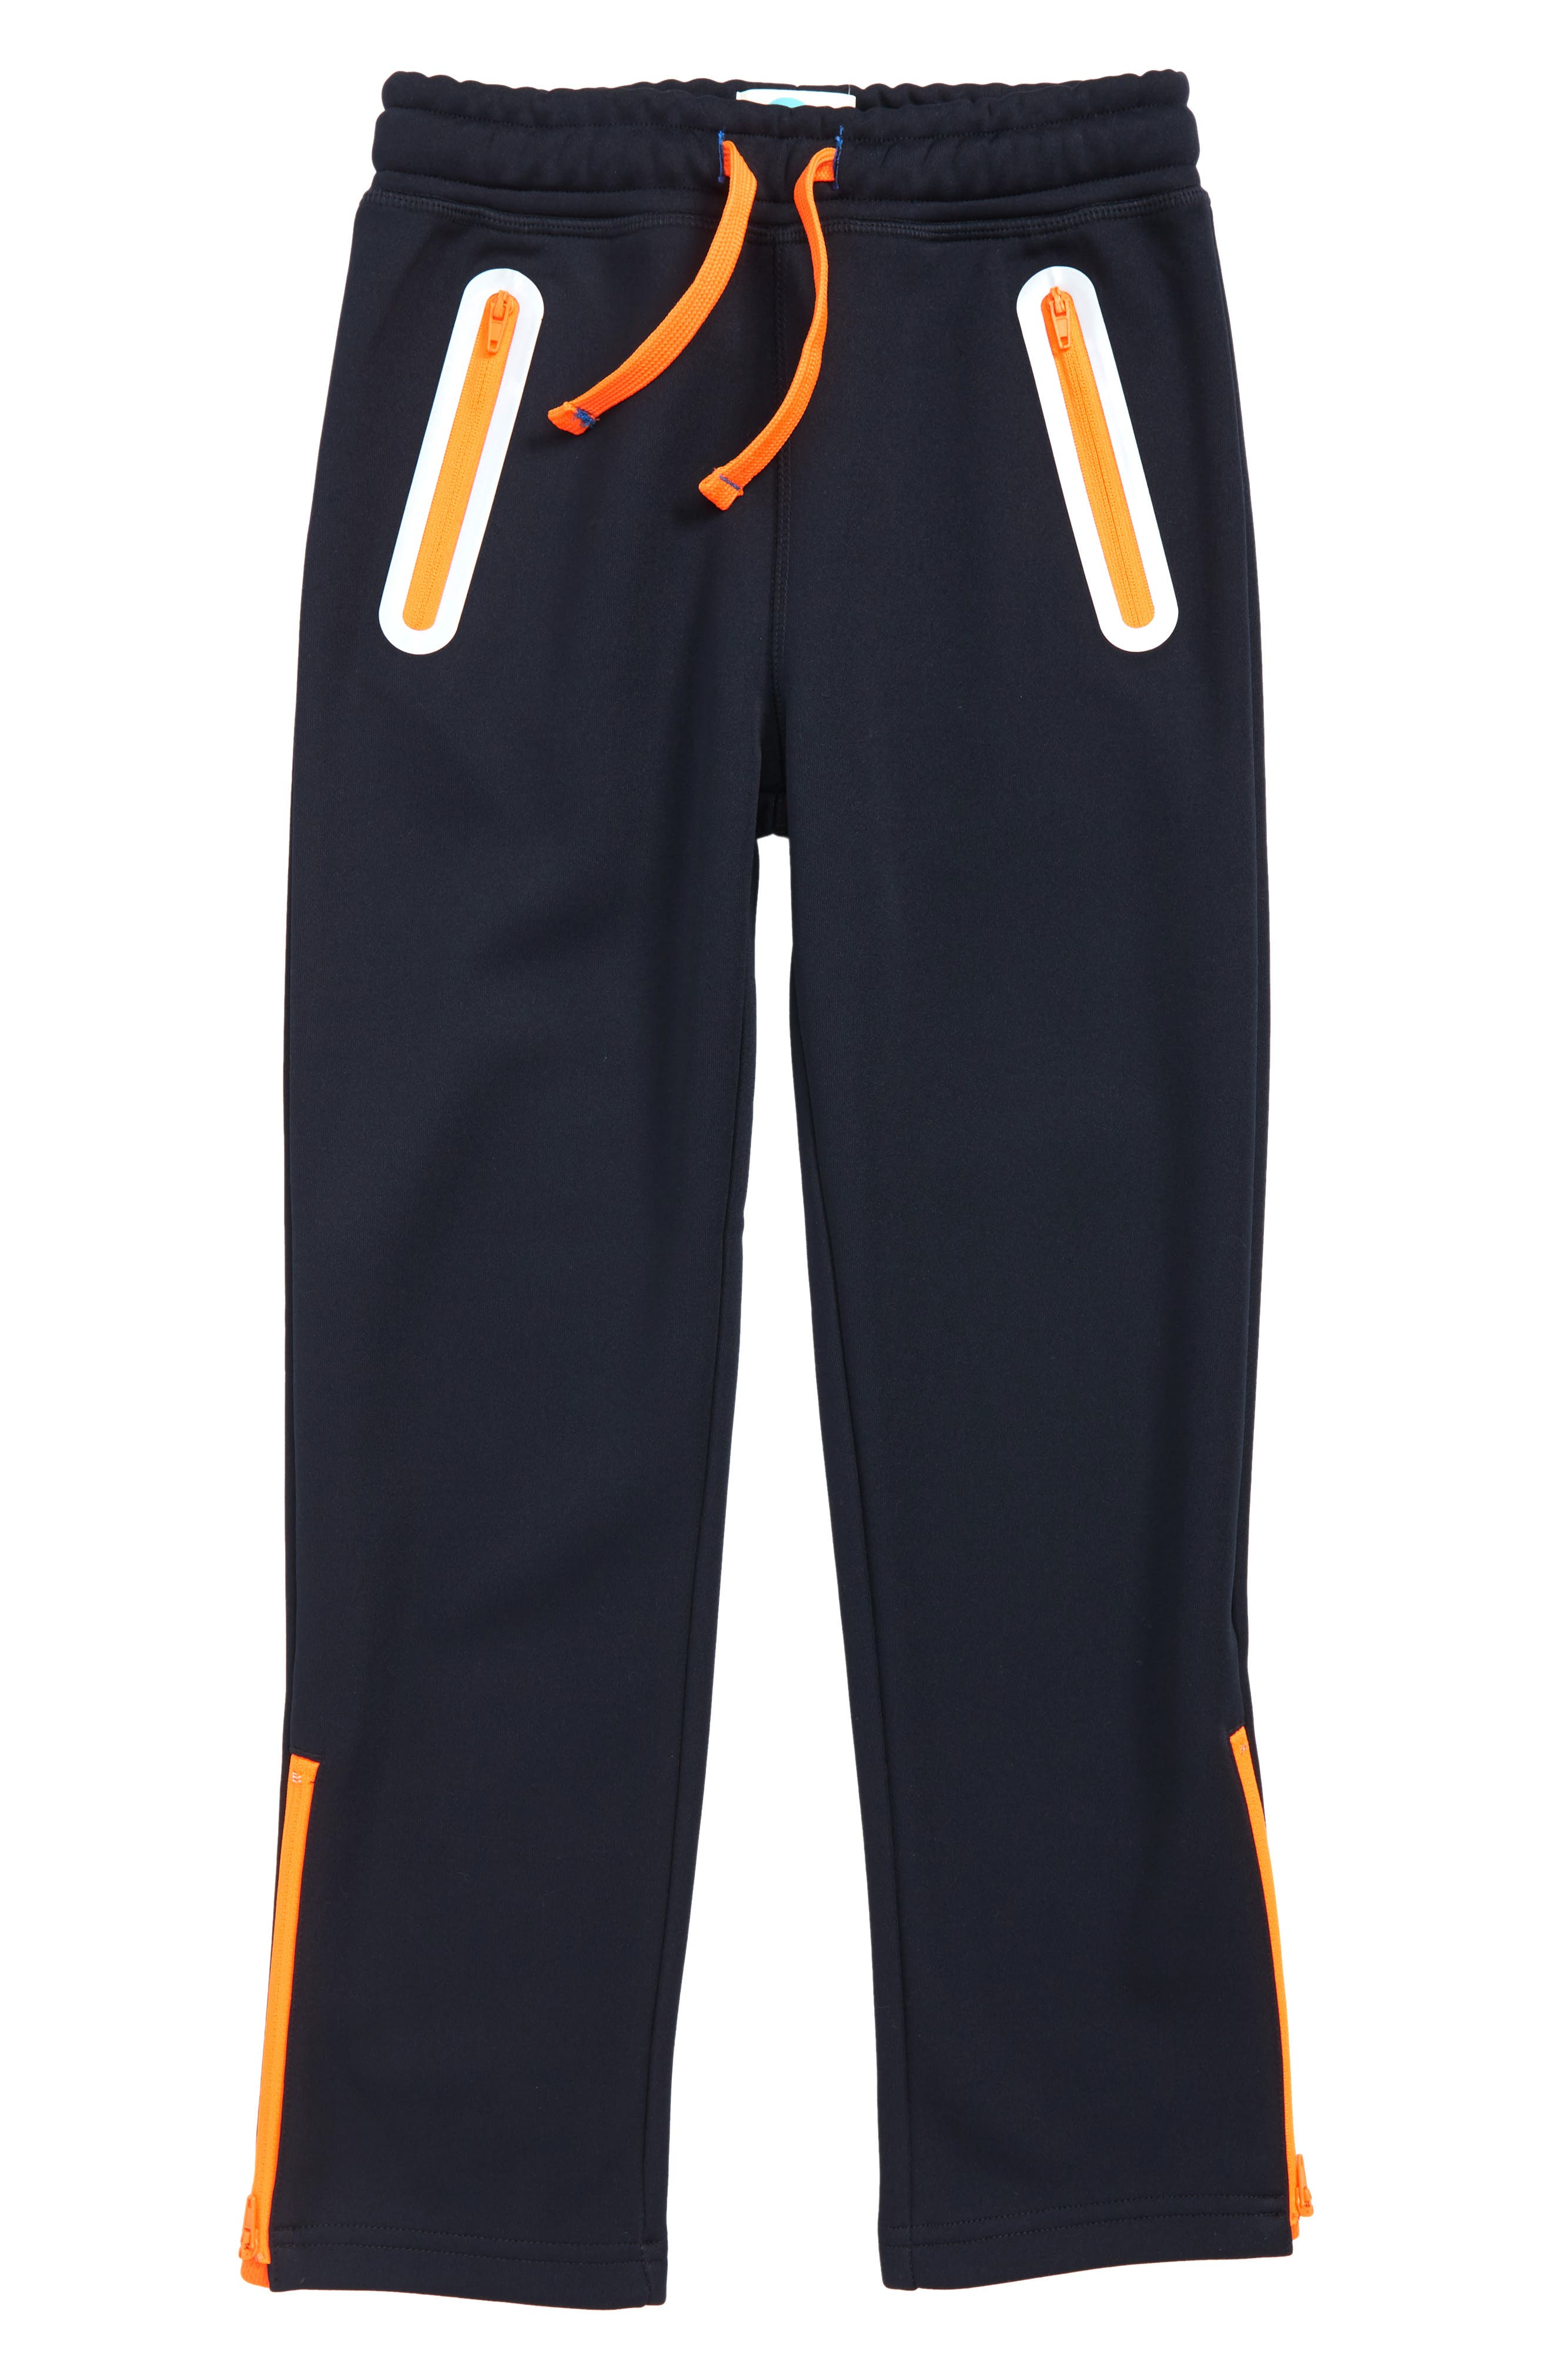 Active Track Pants,                         Main,                         color, Midnight Blue